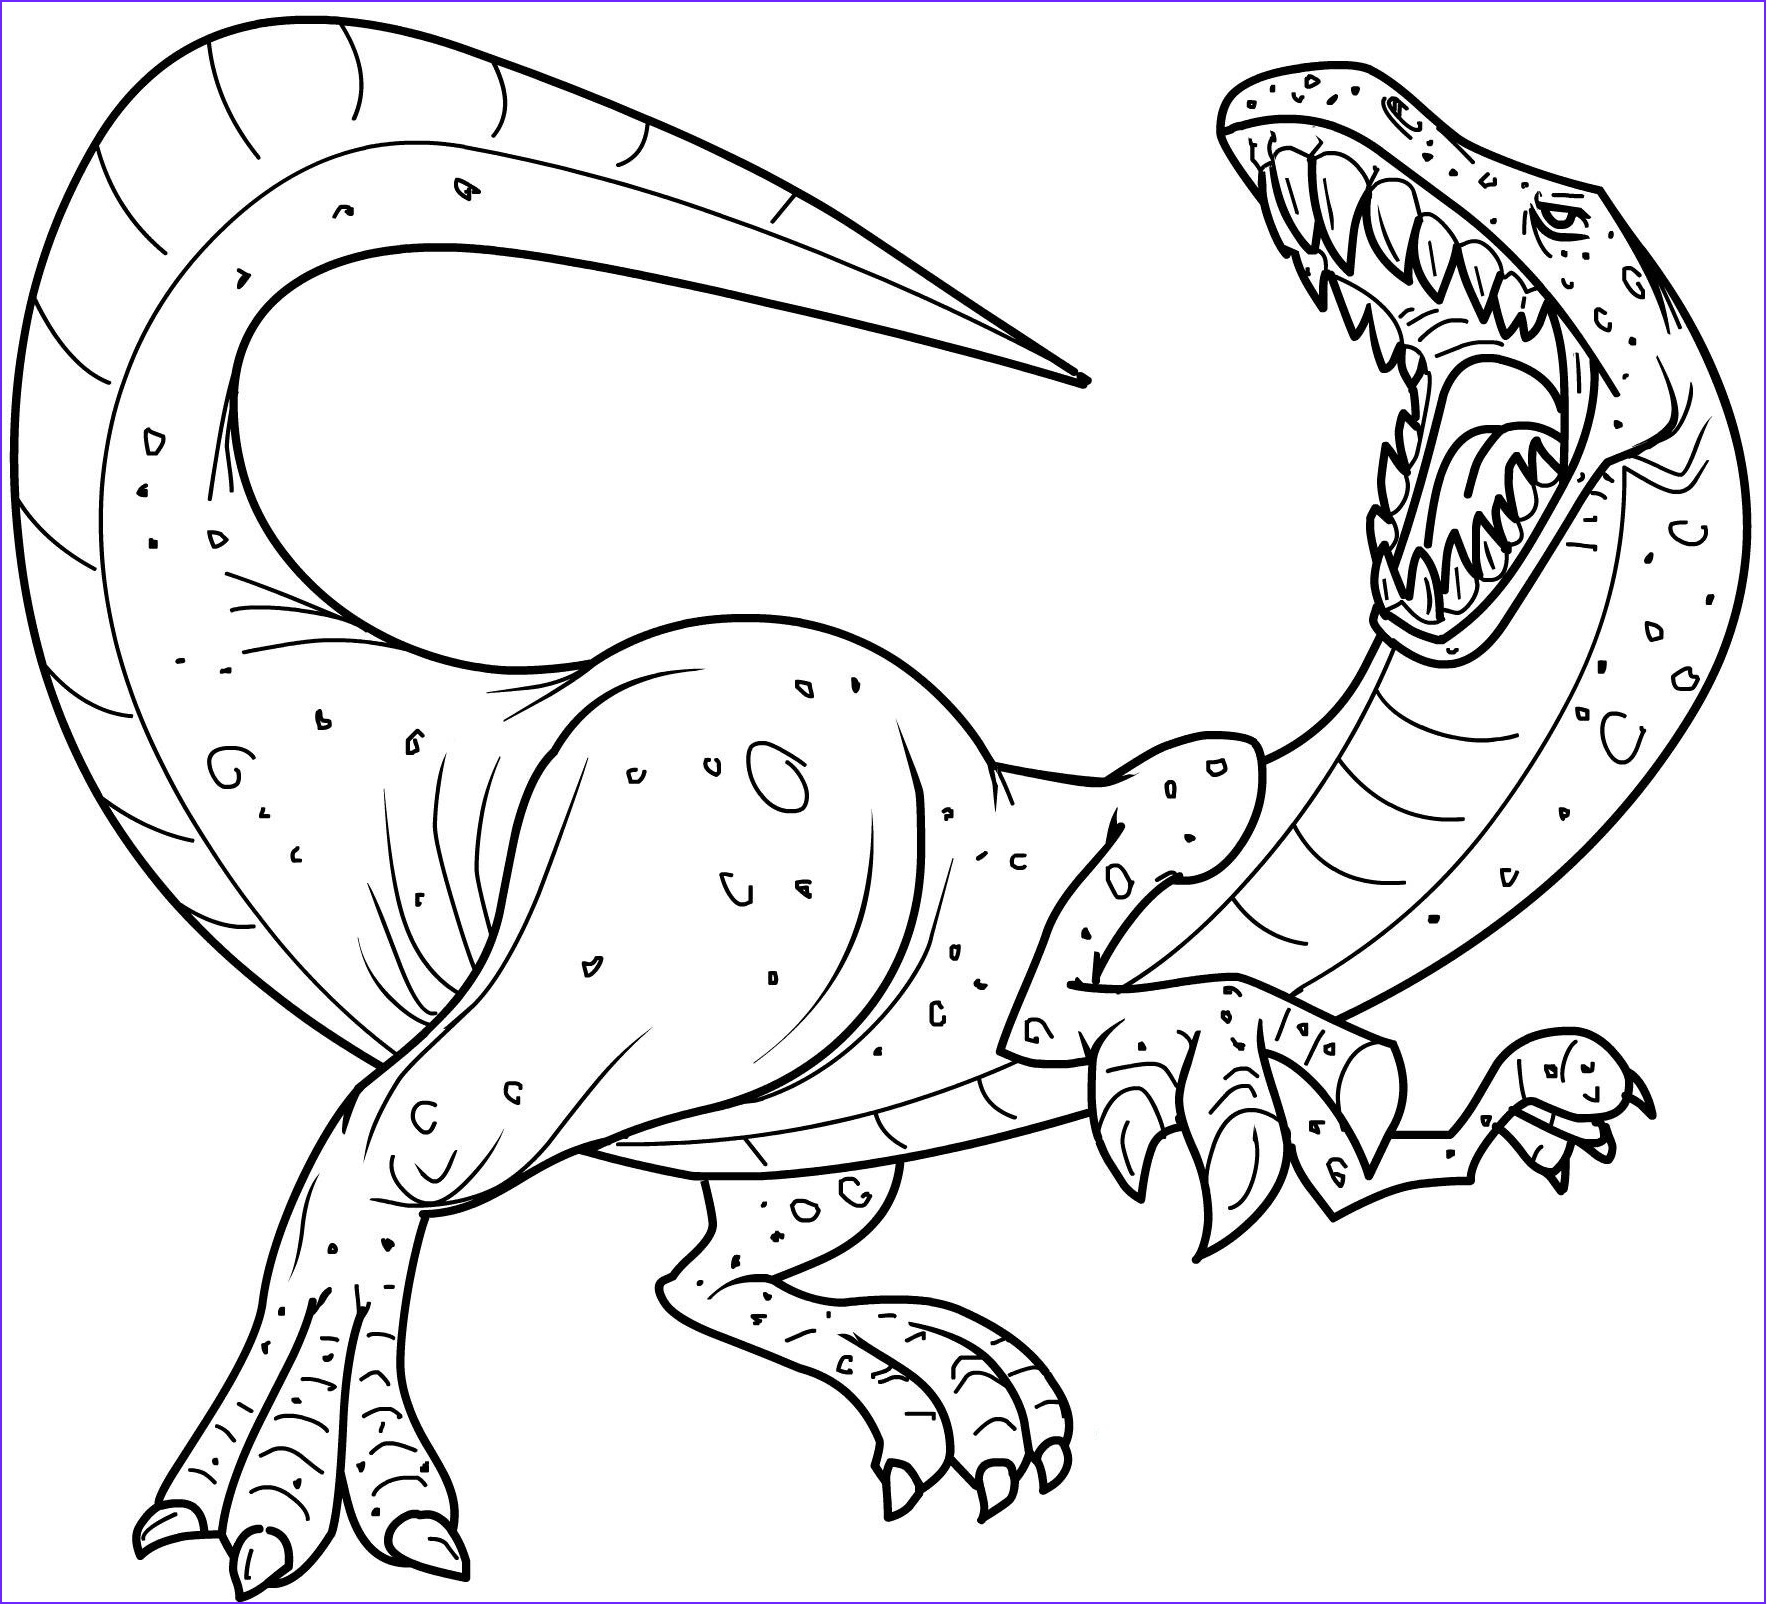 Coloring Page Dinosaur Luxury Photos Free Printable Dinosaur Coloring Pages for Kids